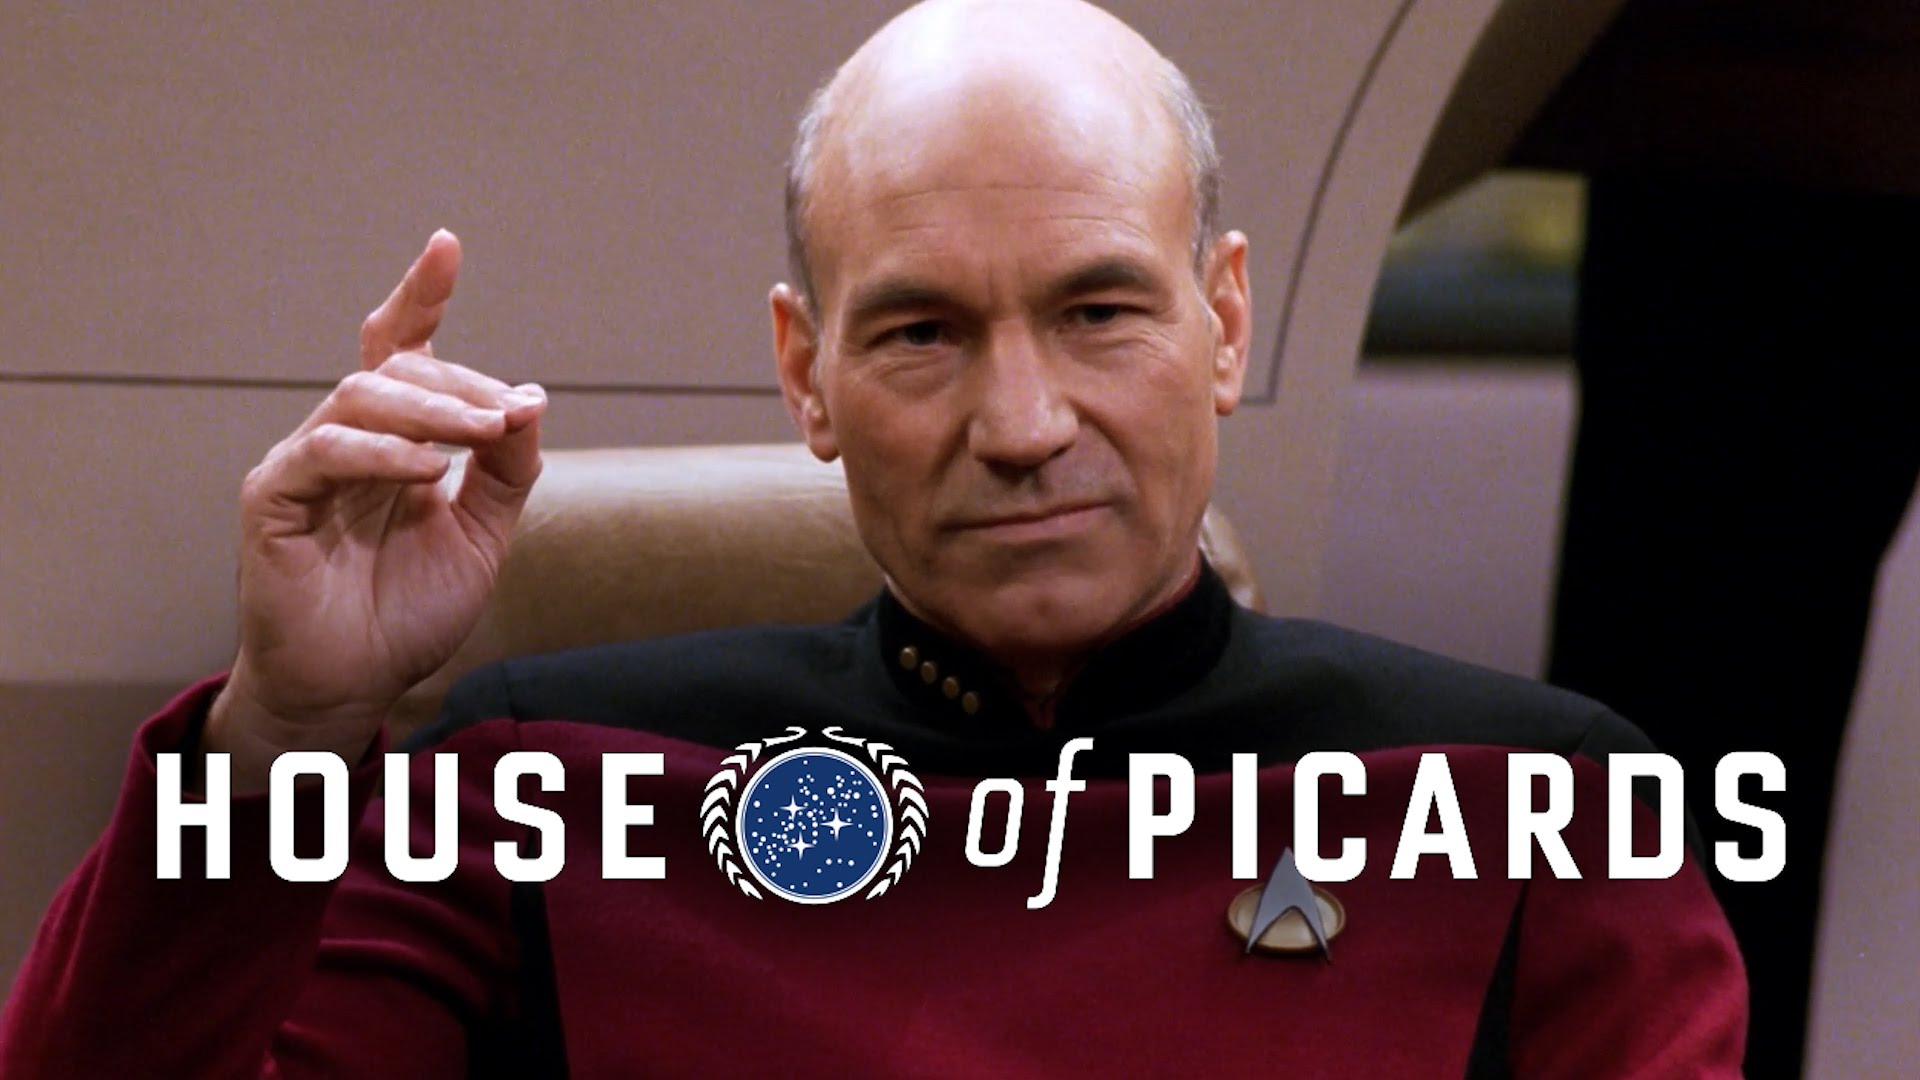 'The House of Picards', The Captain of 'Star Trek: TNG' Becomes as Ruthless as Frank Underwood in 'House of Cards'